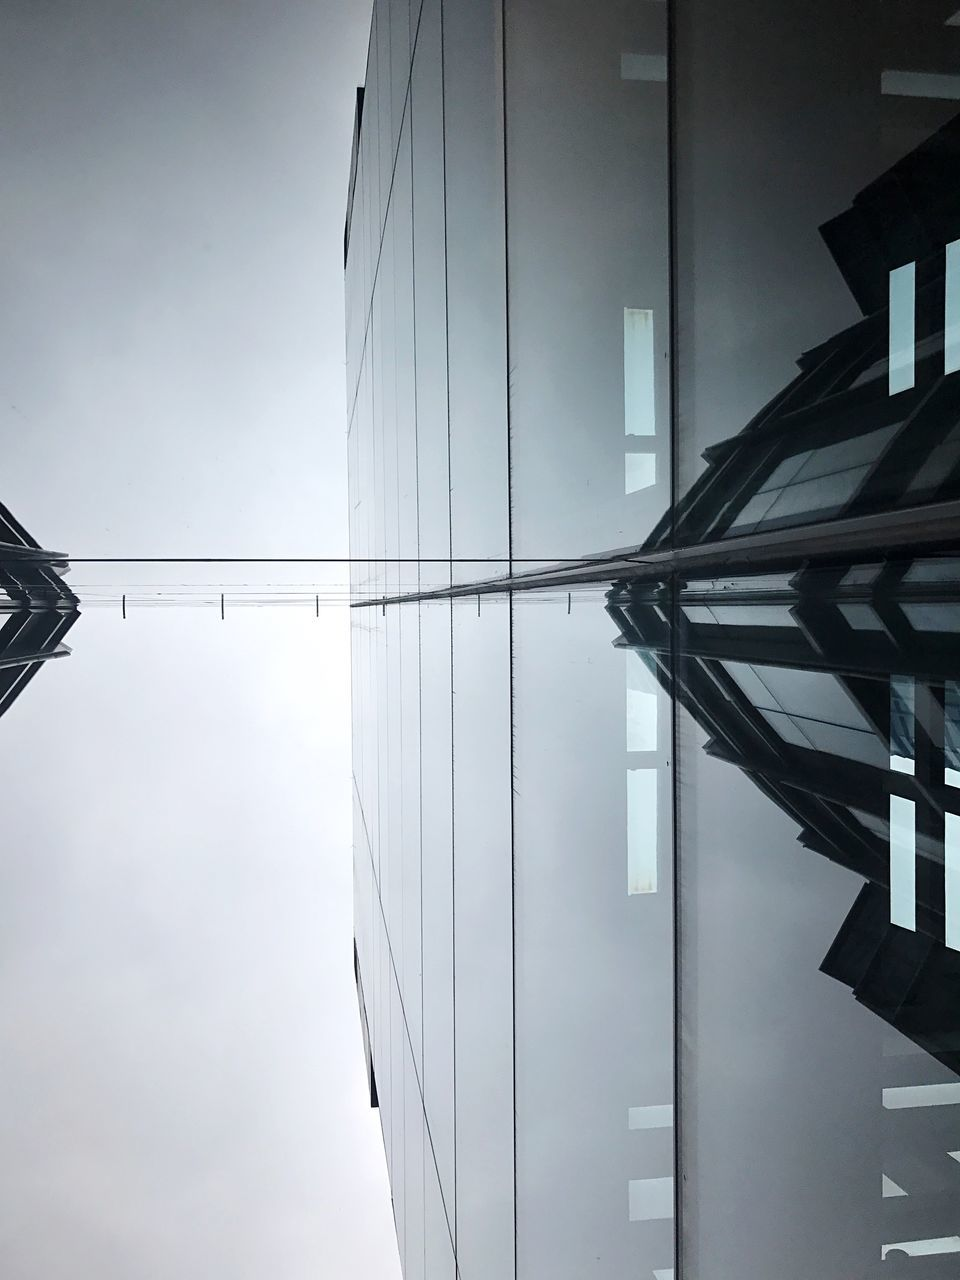 sky, architecture, built structure, no people, connection, outdoors, day, building exterior, low angle view, modern